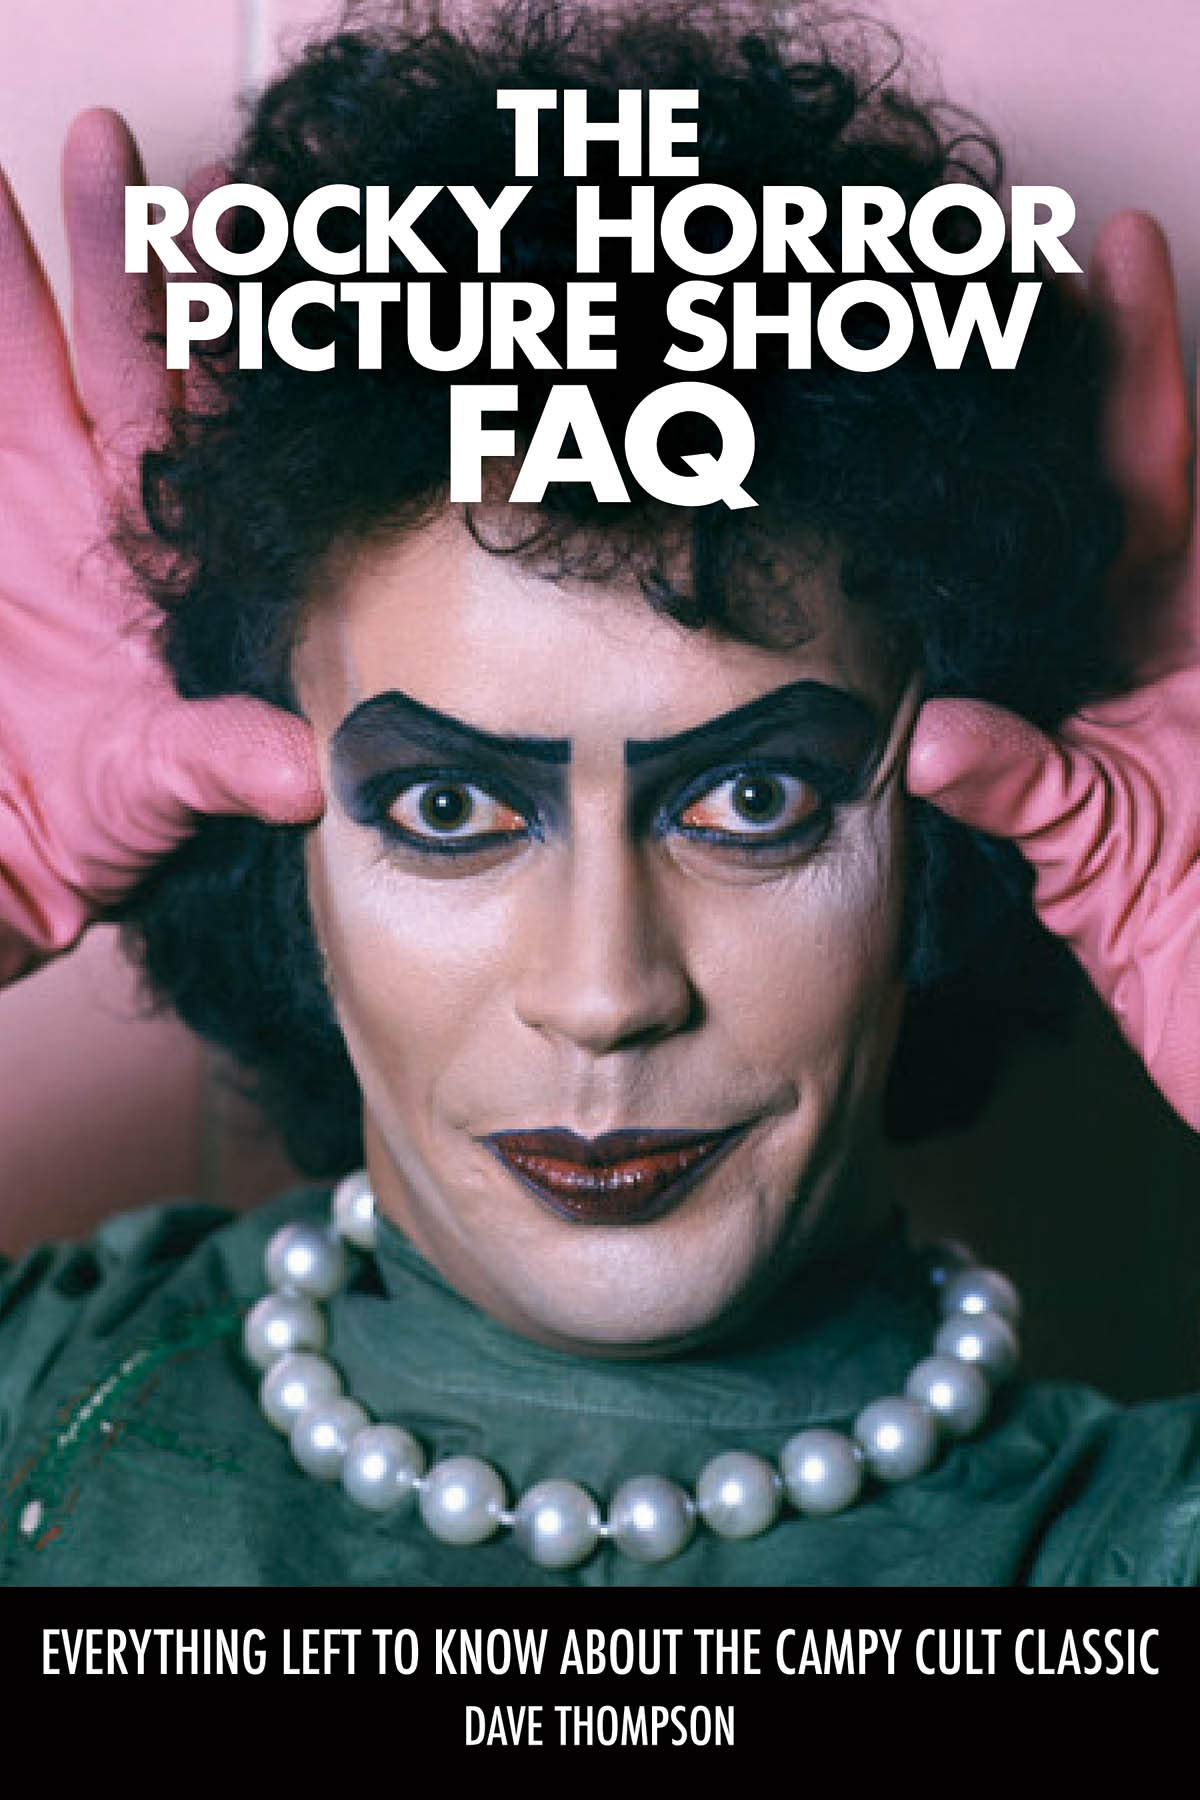 The Rocky Horror Picture Show FAQ: Everything Left to Know About the Campy  Cult Classic (FAQ Series): Amazon.co.uk: Dave Thompson: 9781495007477: Books